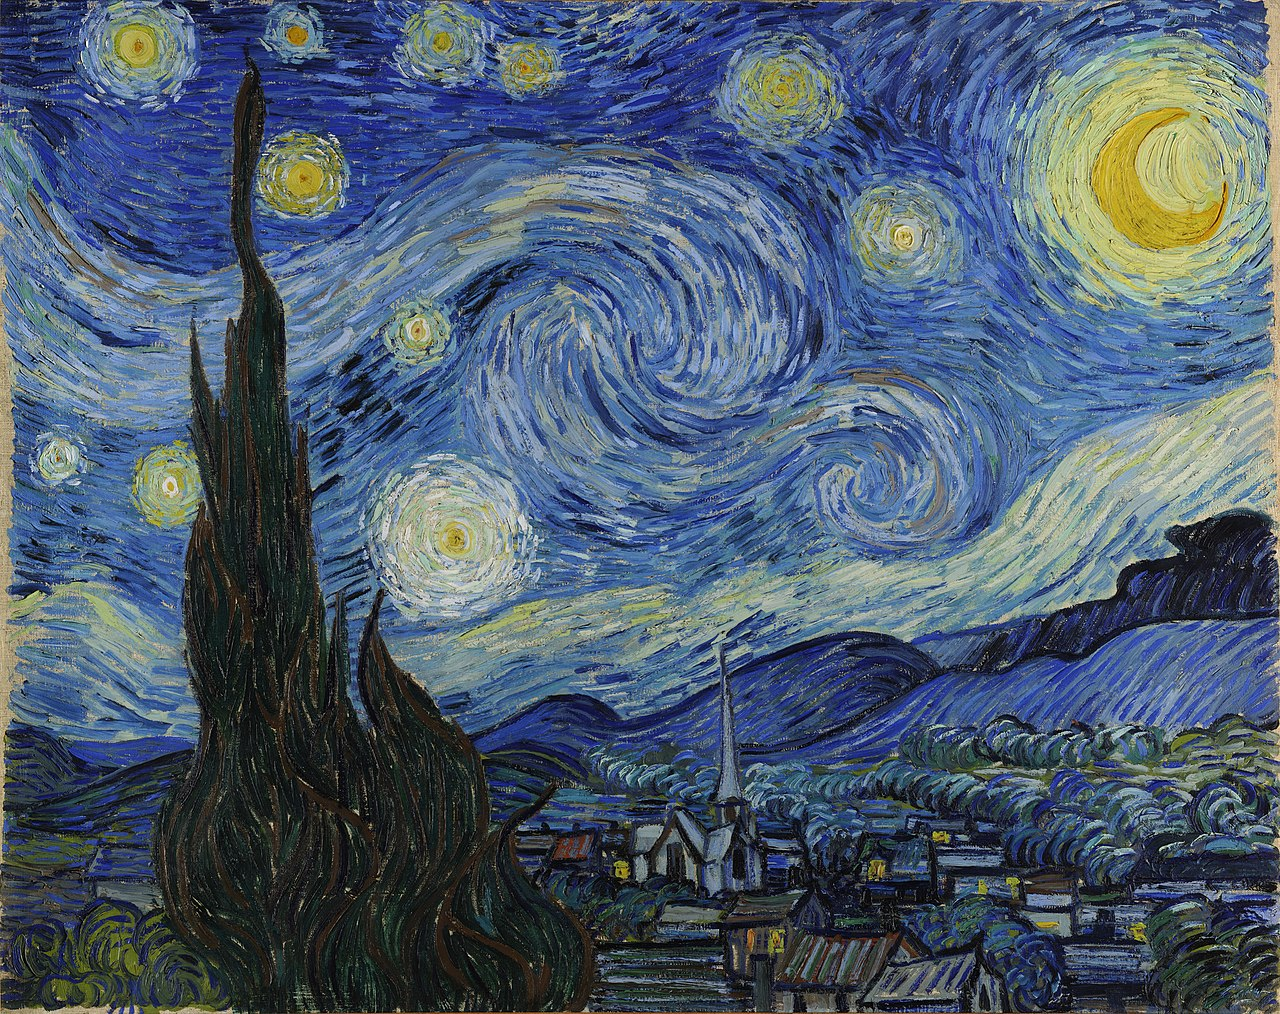 Vincent Van Gogh, Starry Night